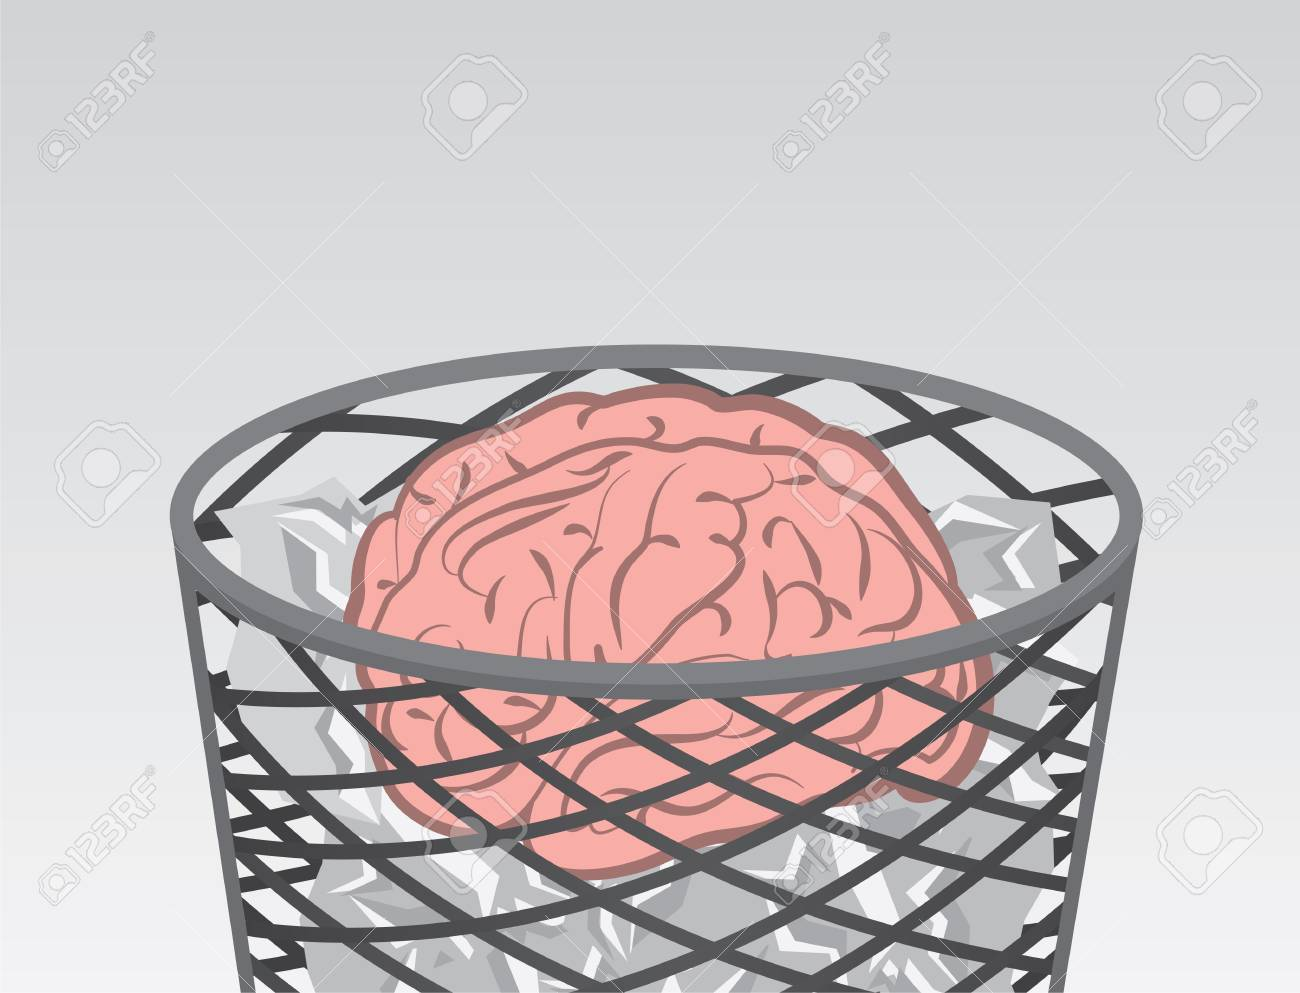 Garbage filled with brain and trash Stock Vector - 18010979